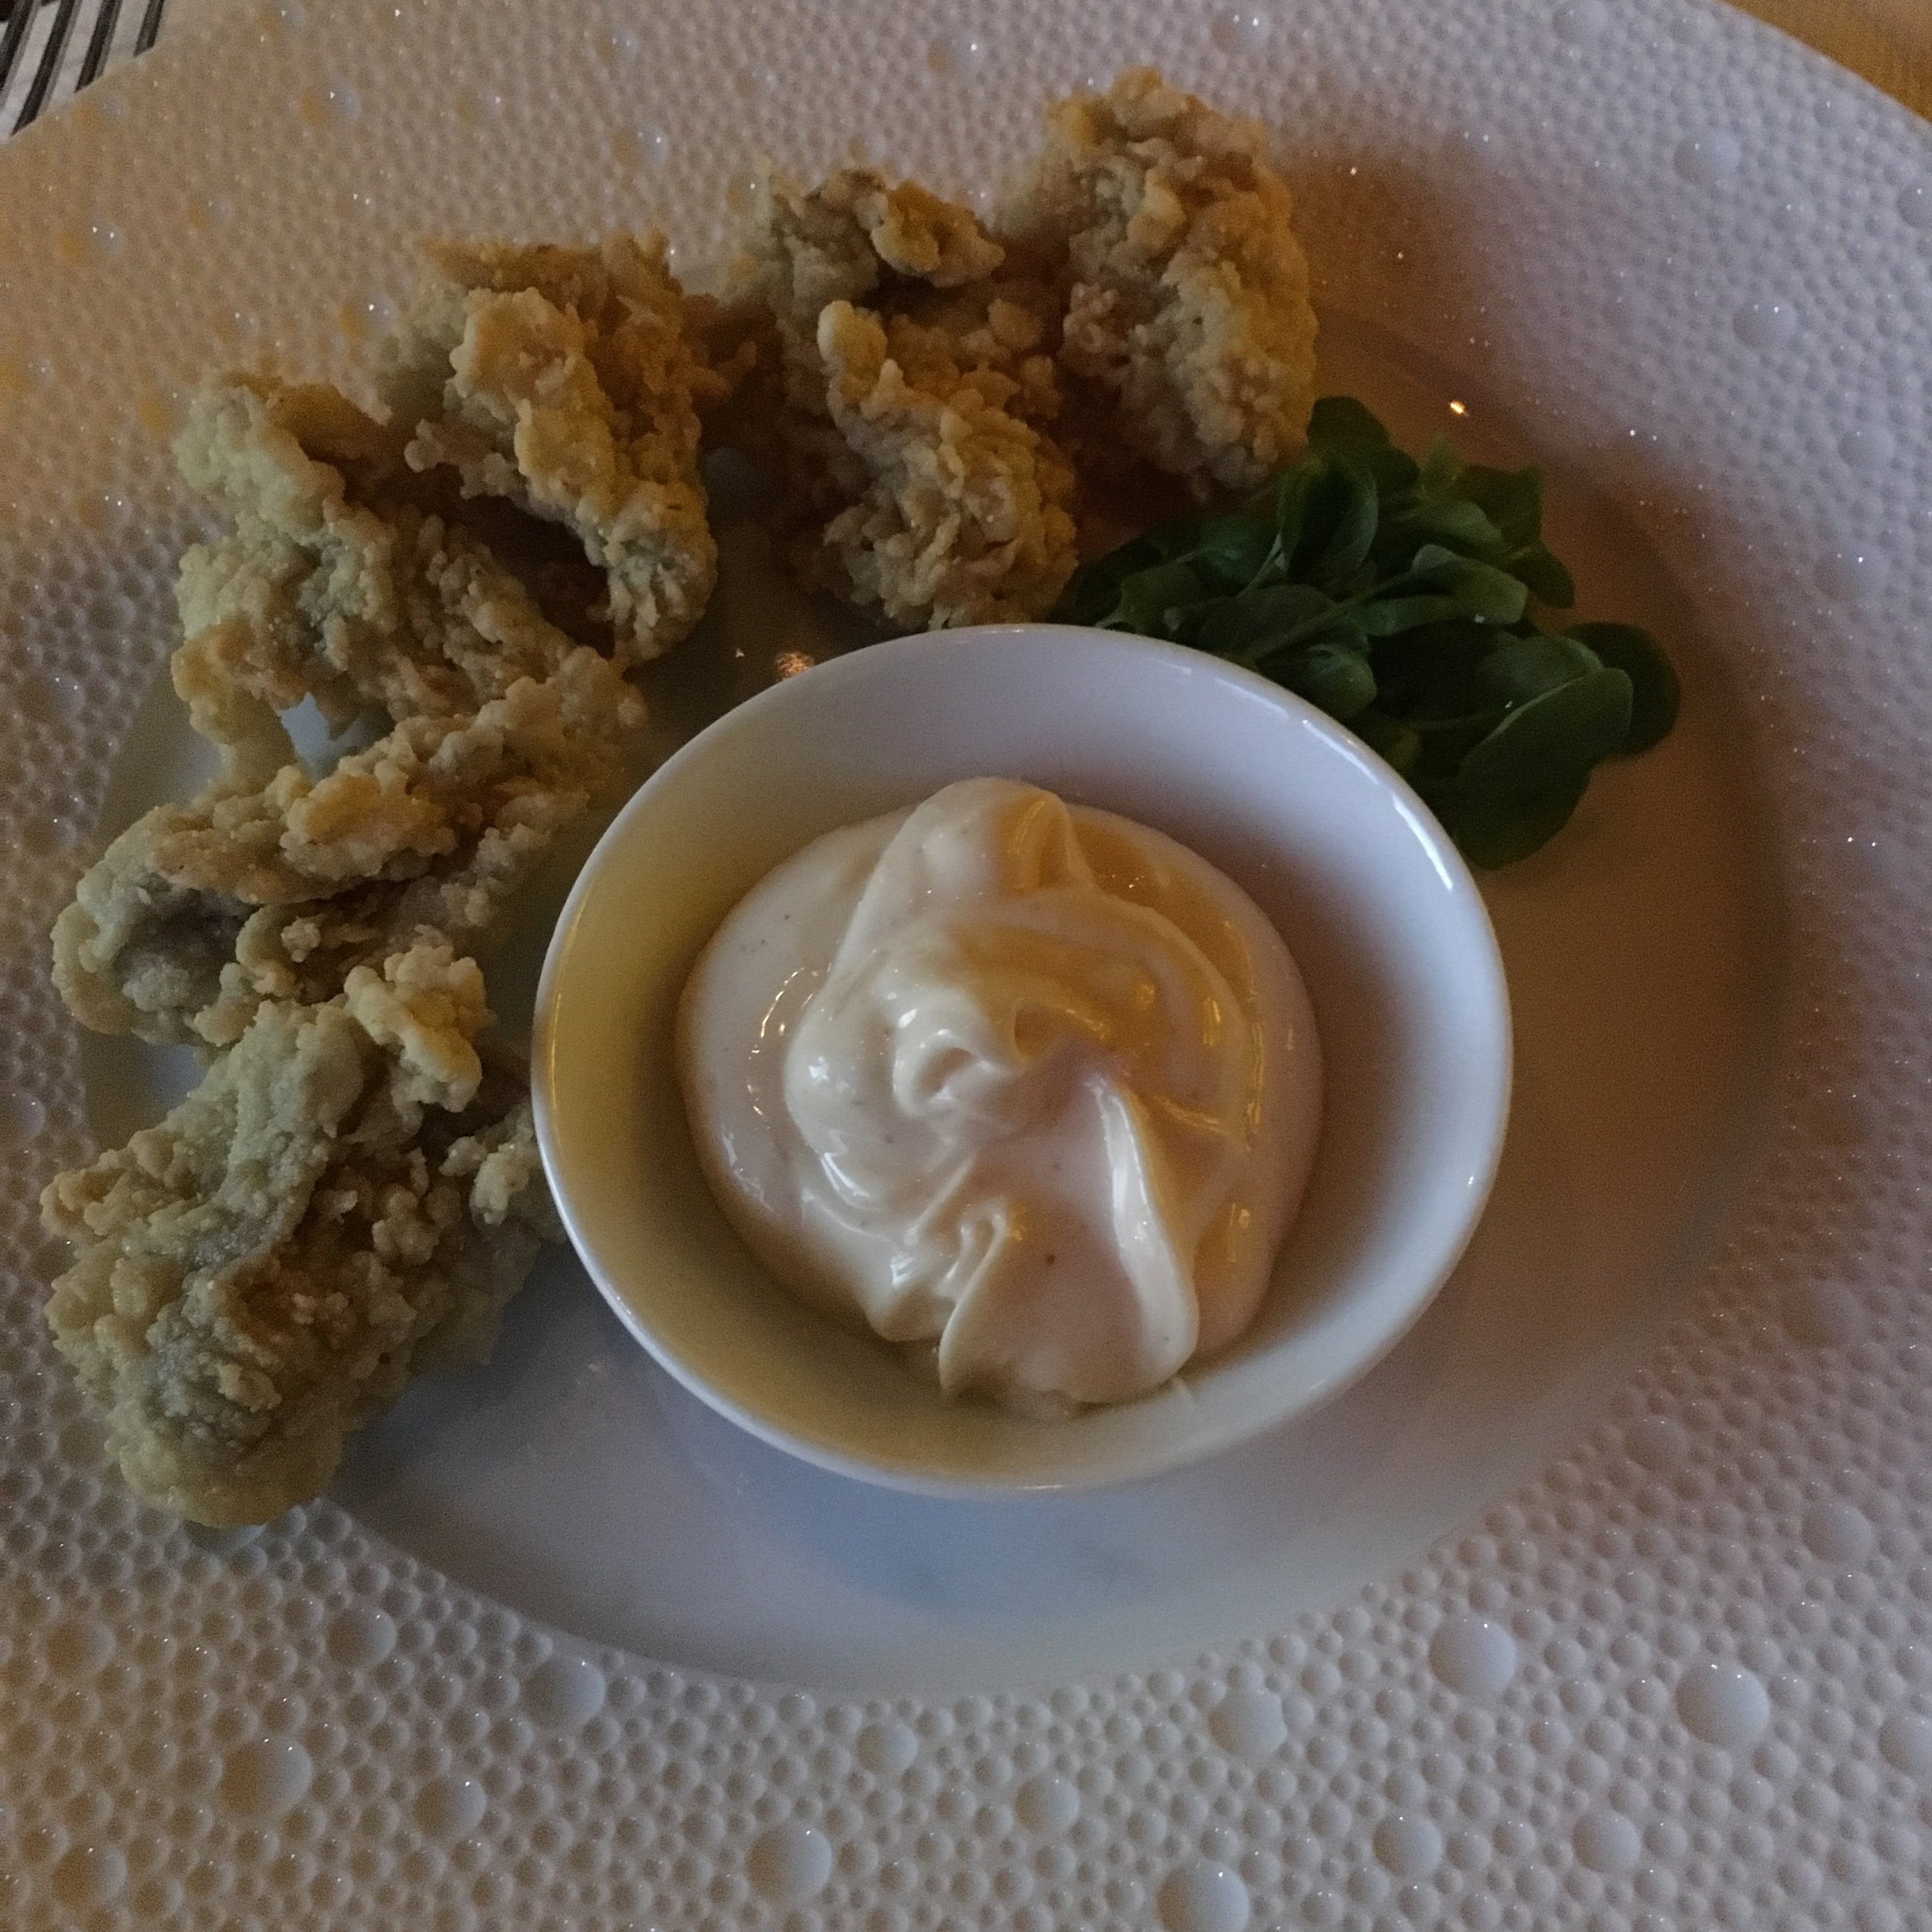 Cornmeal-Fried Oysters